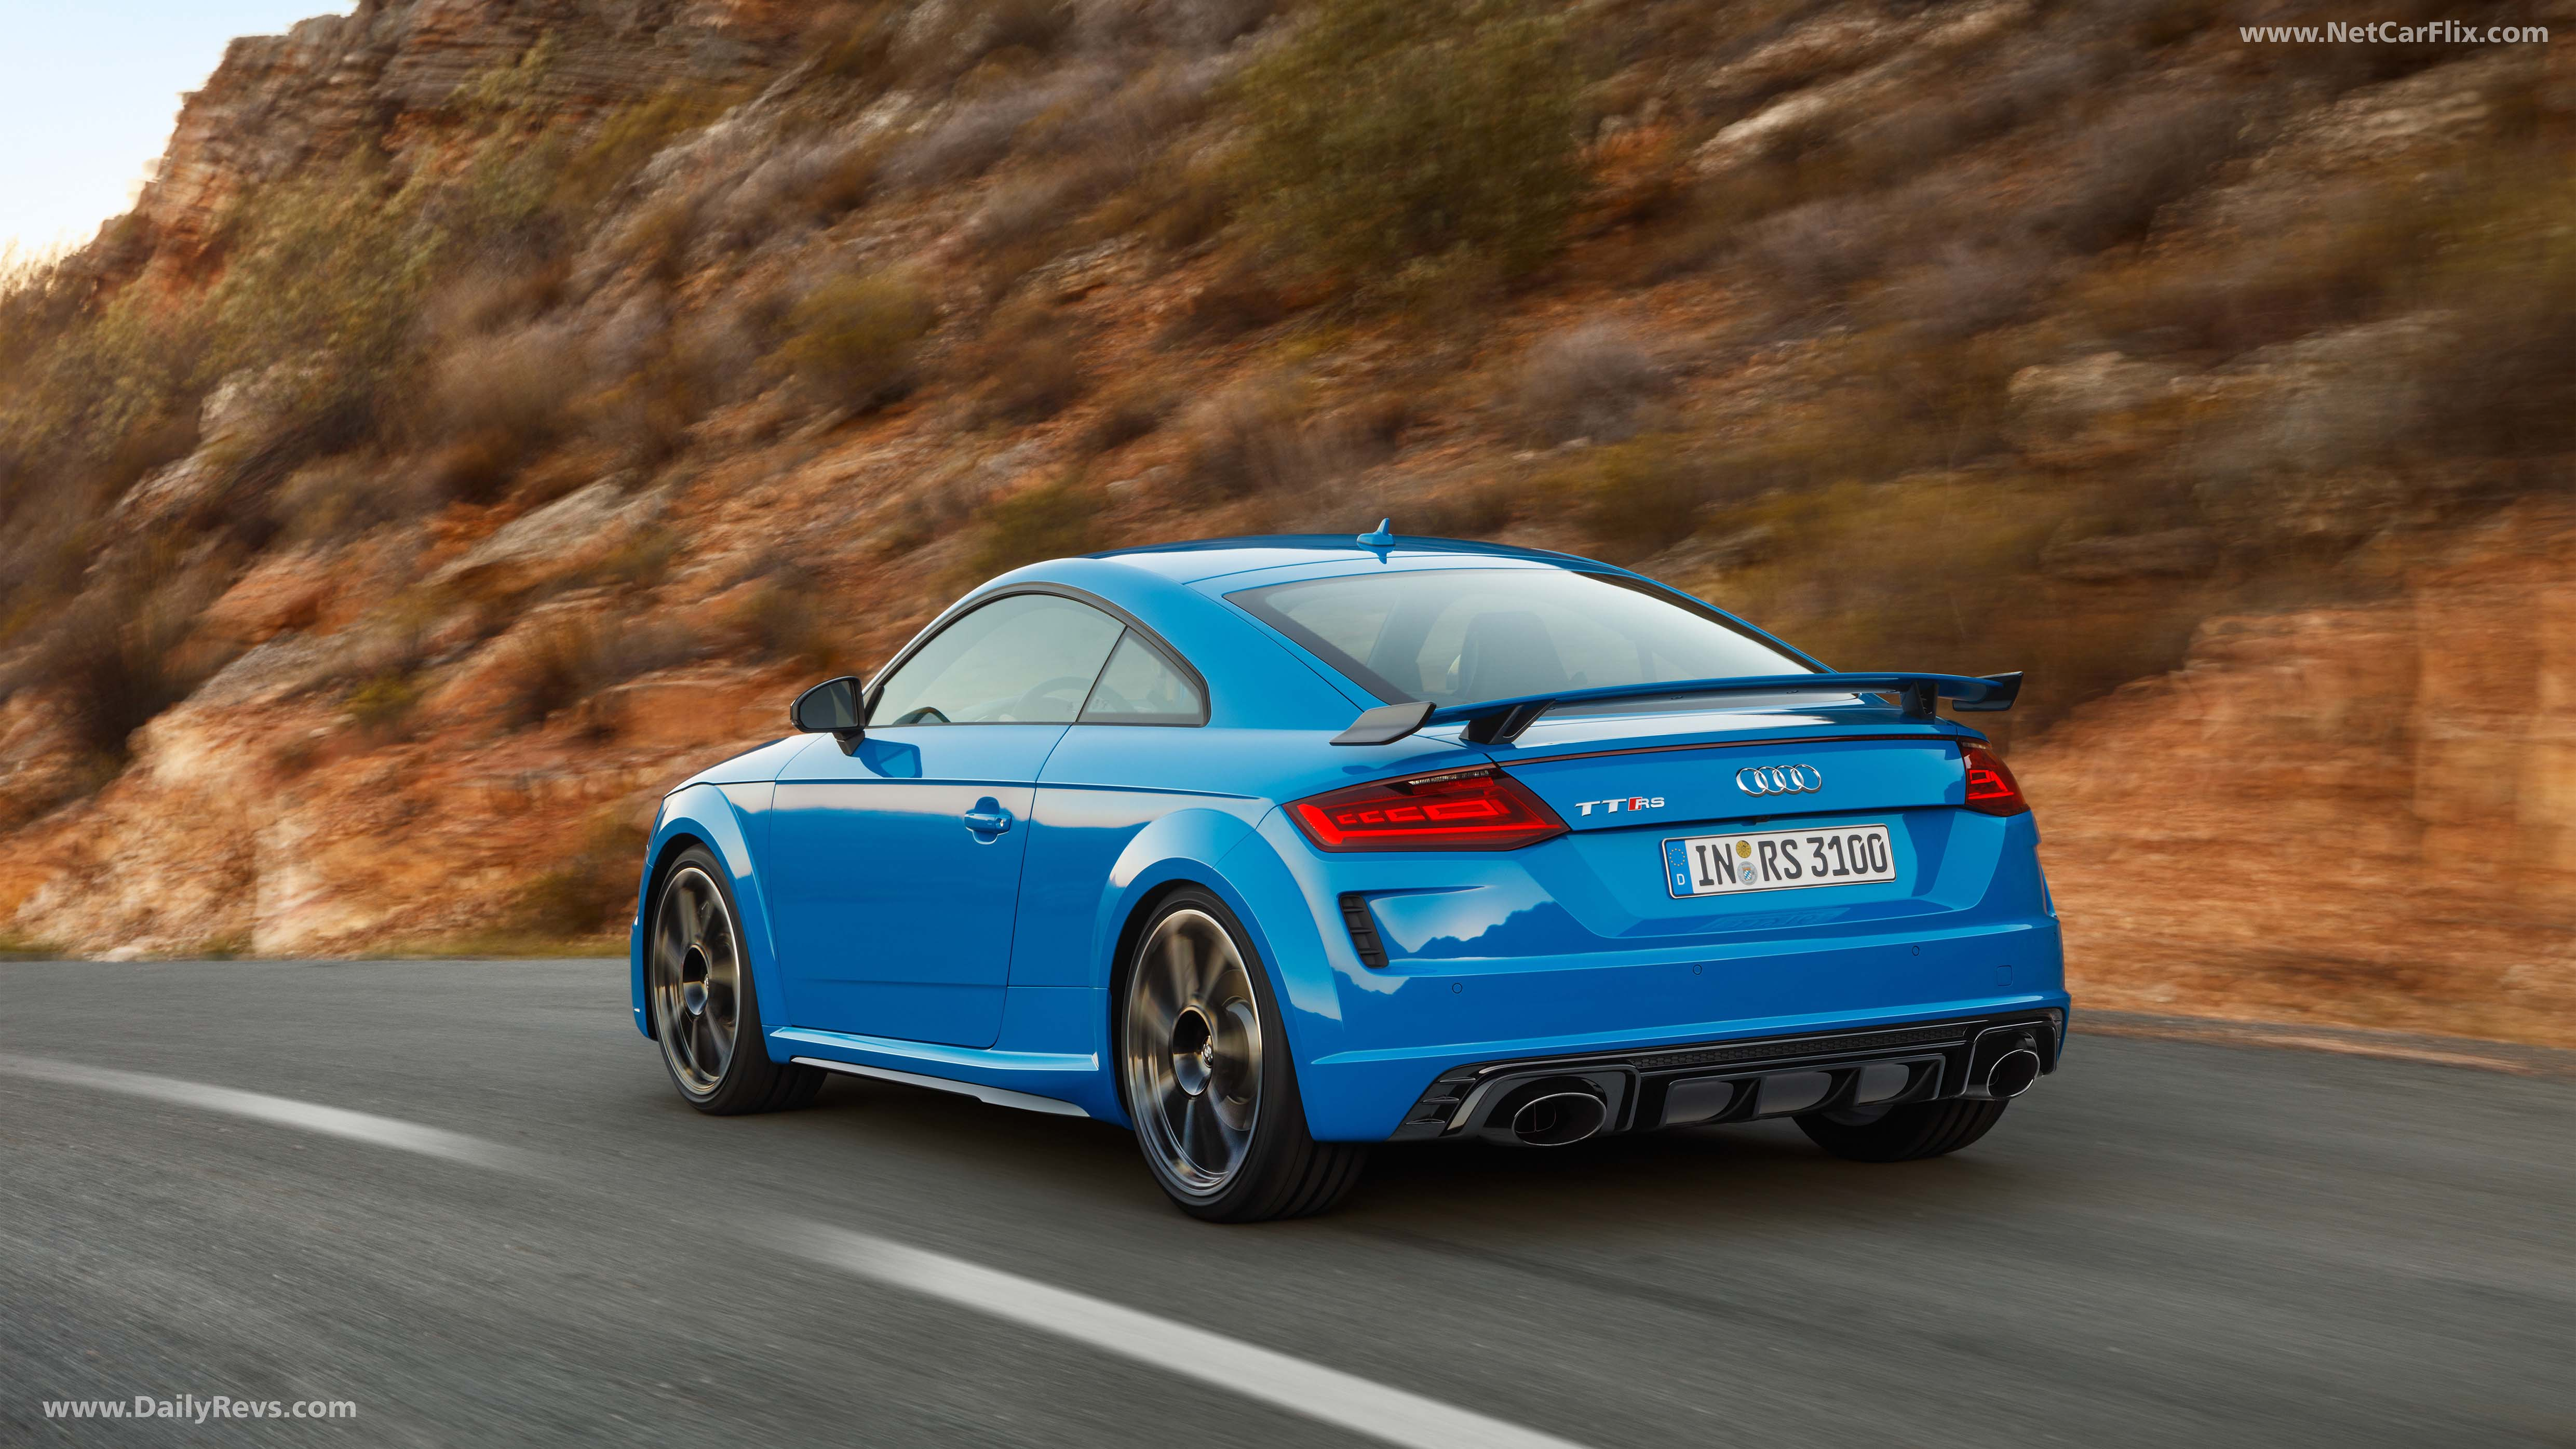 2020 Audi TT RS Coupe - Pictures, Images, Photos ...